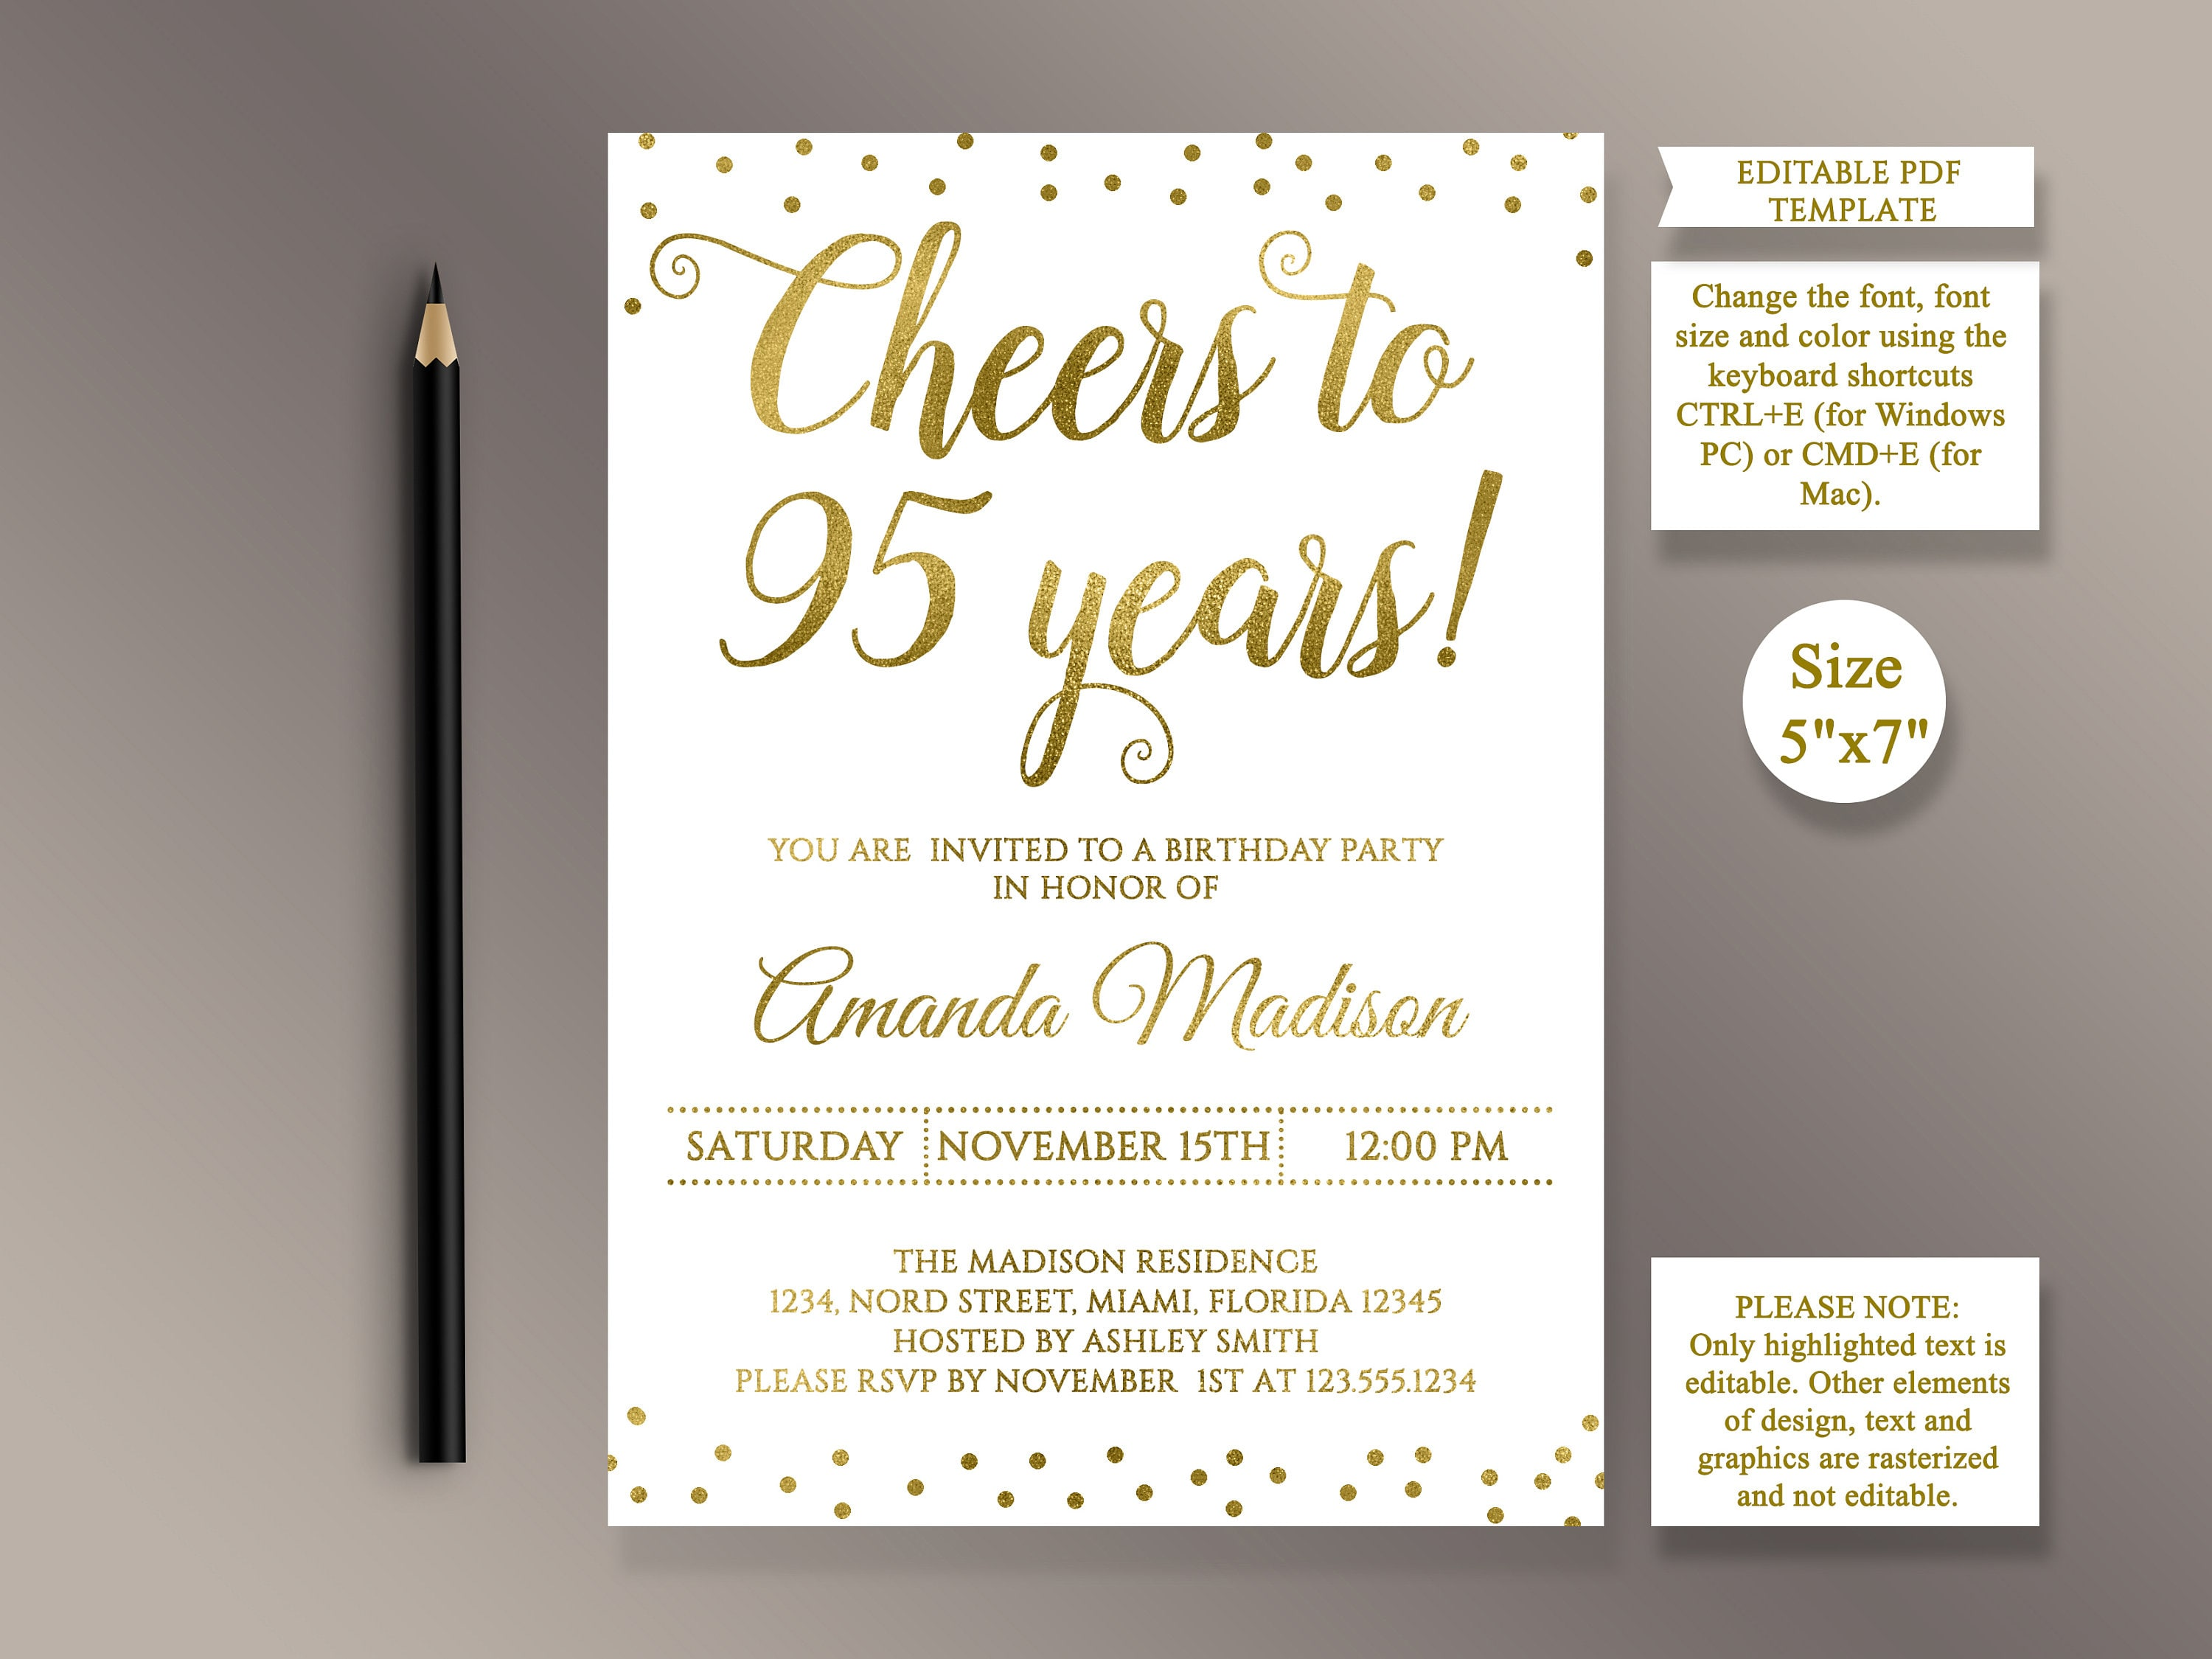 EDITABLE 95th Birthday Party Invitation Template Cheers To 95